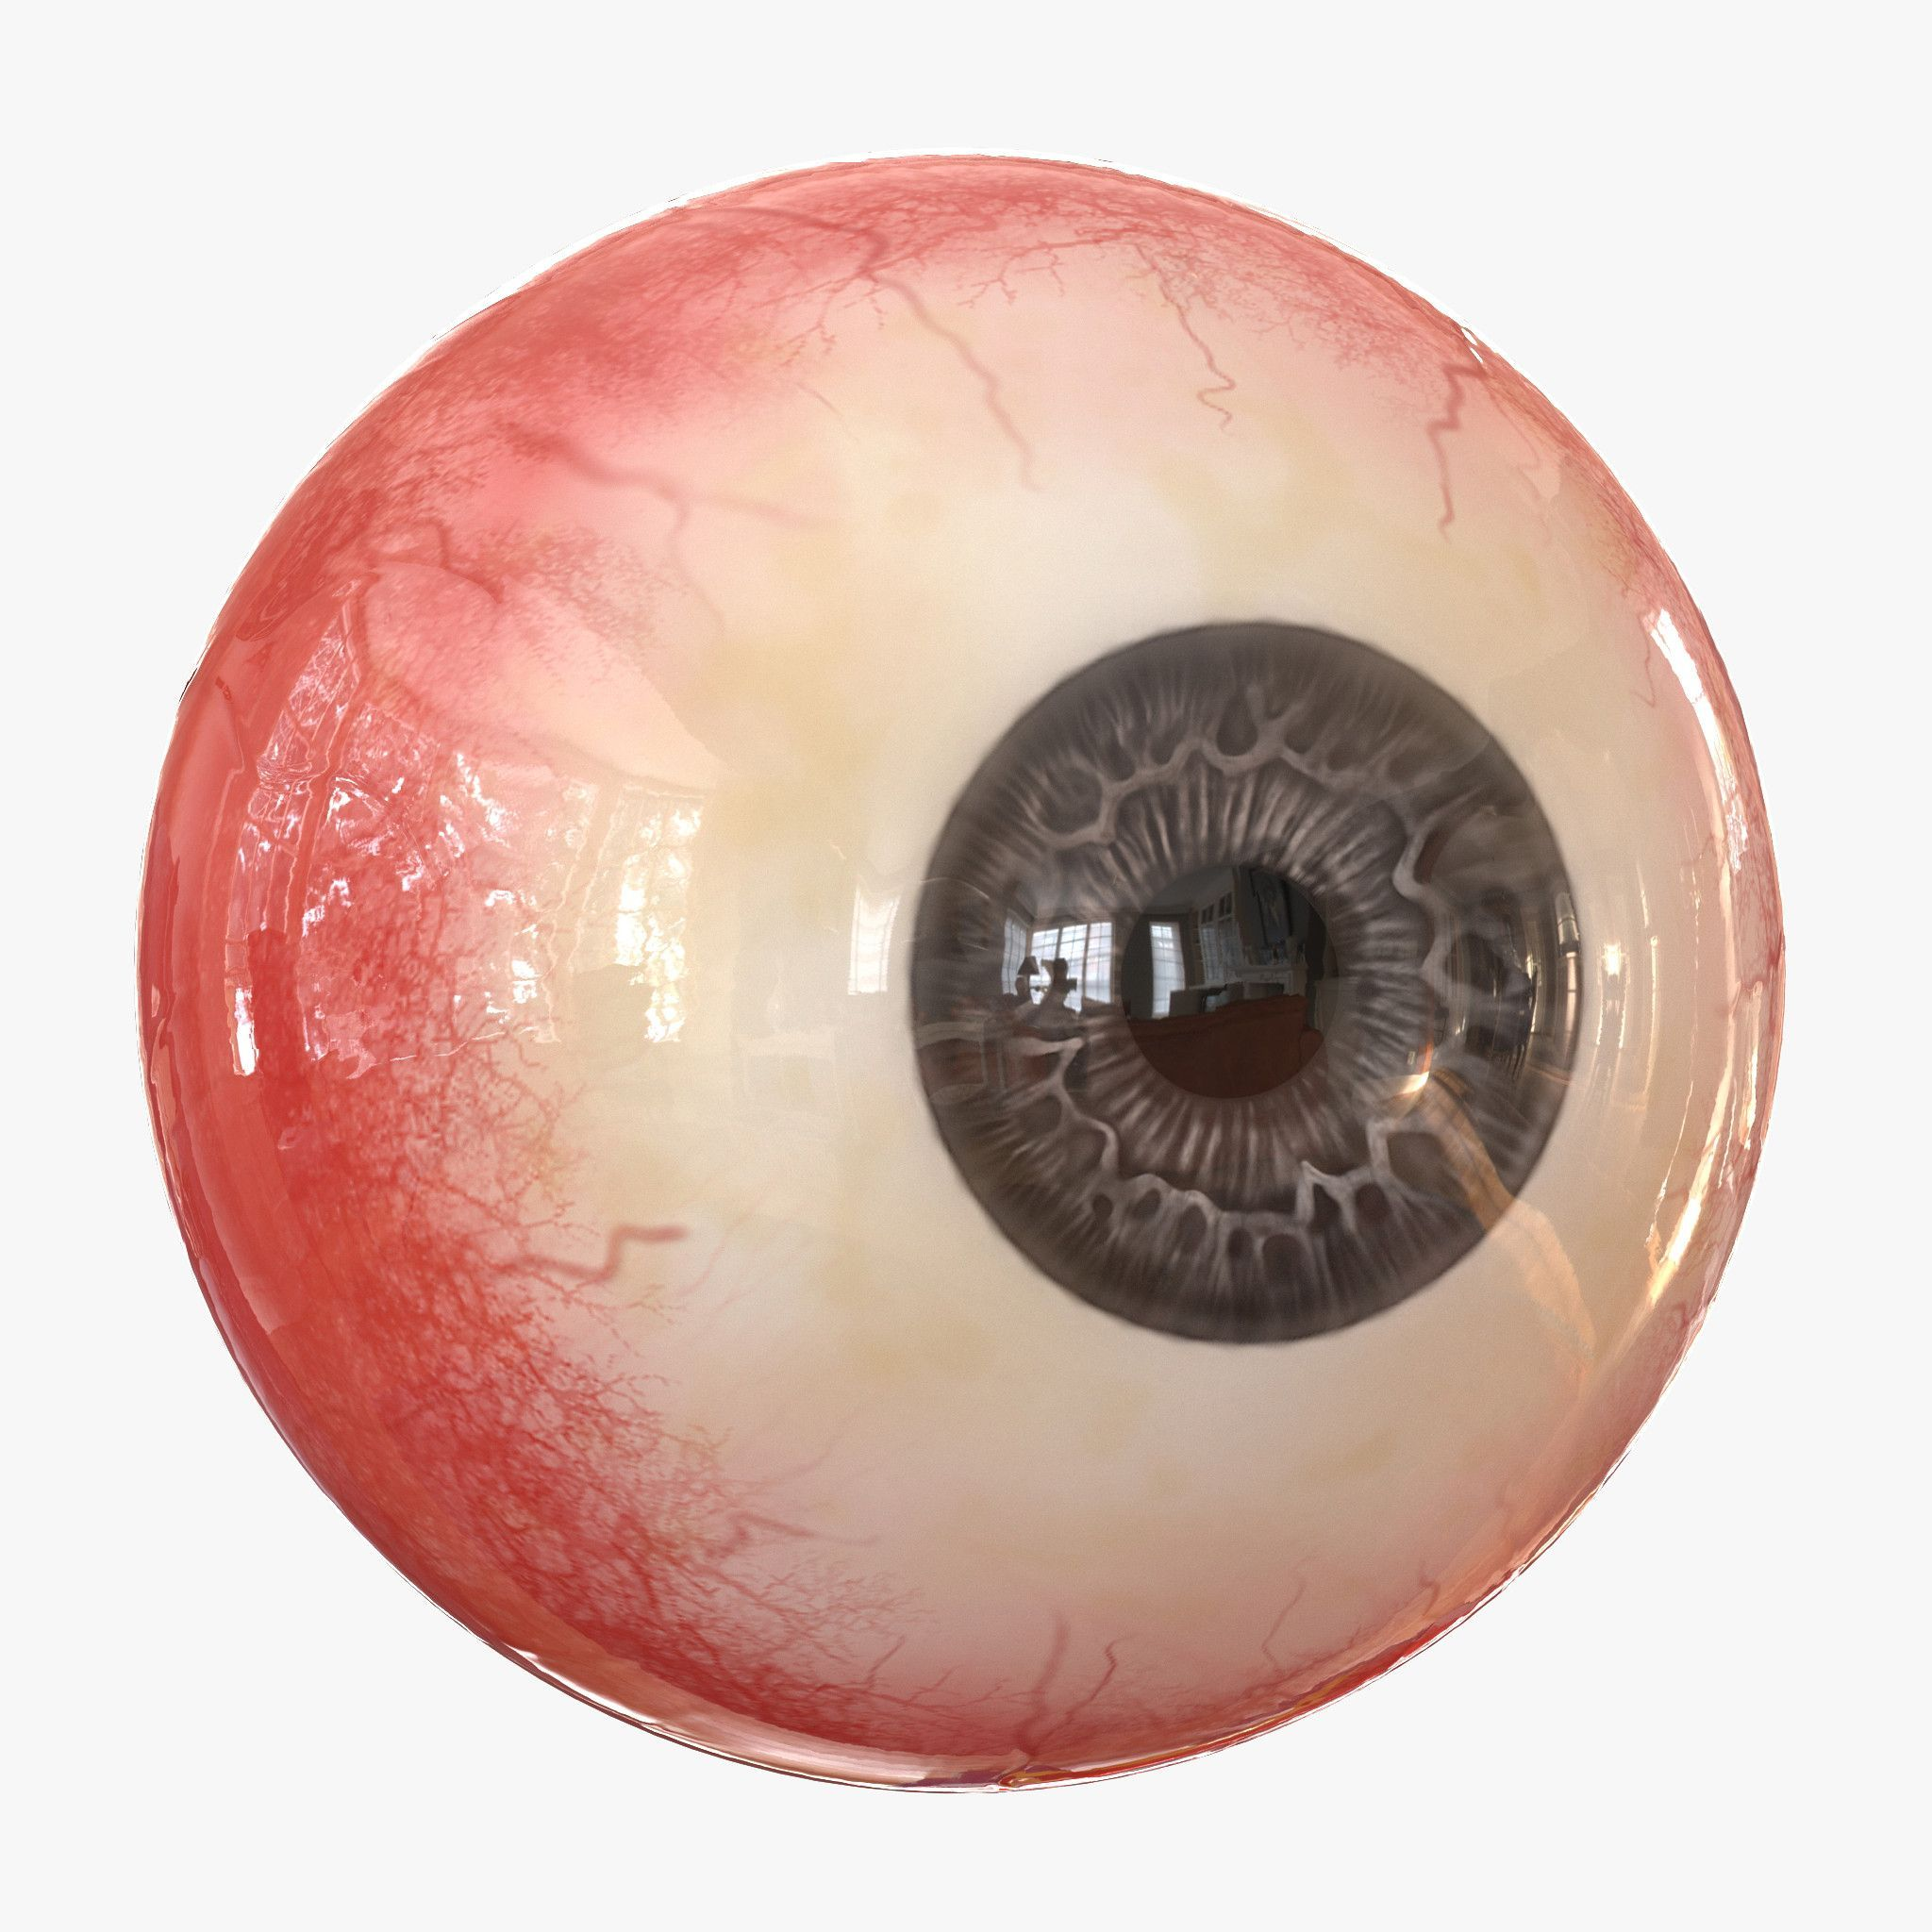 Eye Eyeball Eyes Zbrush Sculpt Iris Pupil Cornea Sclera Lens Vision